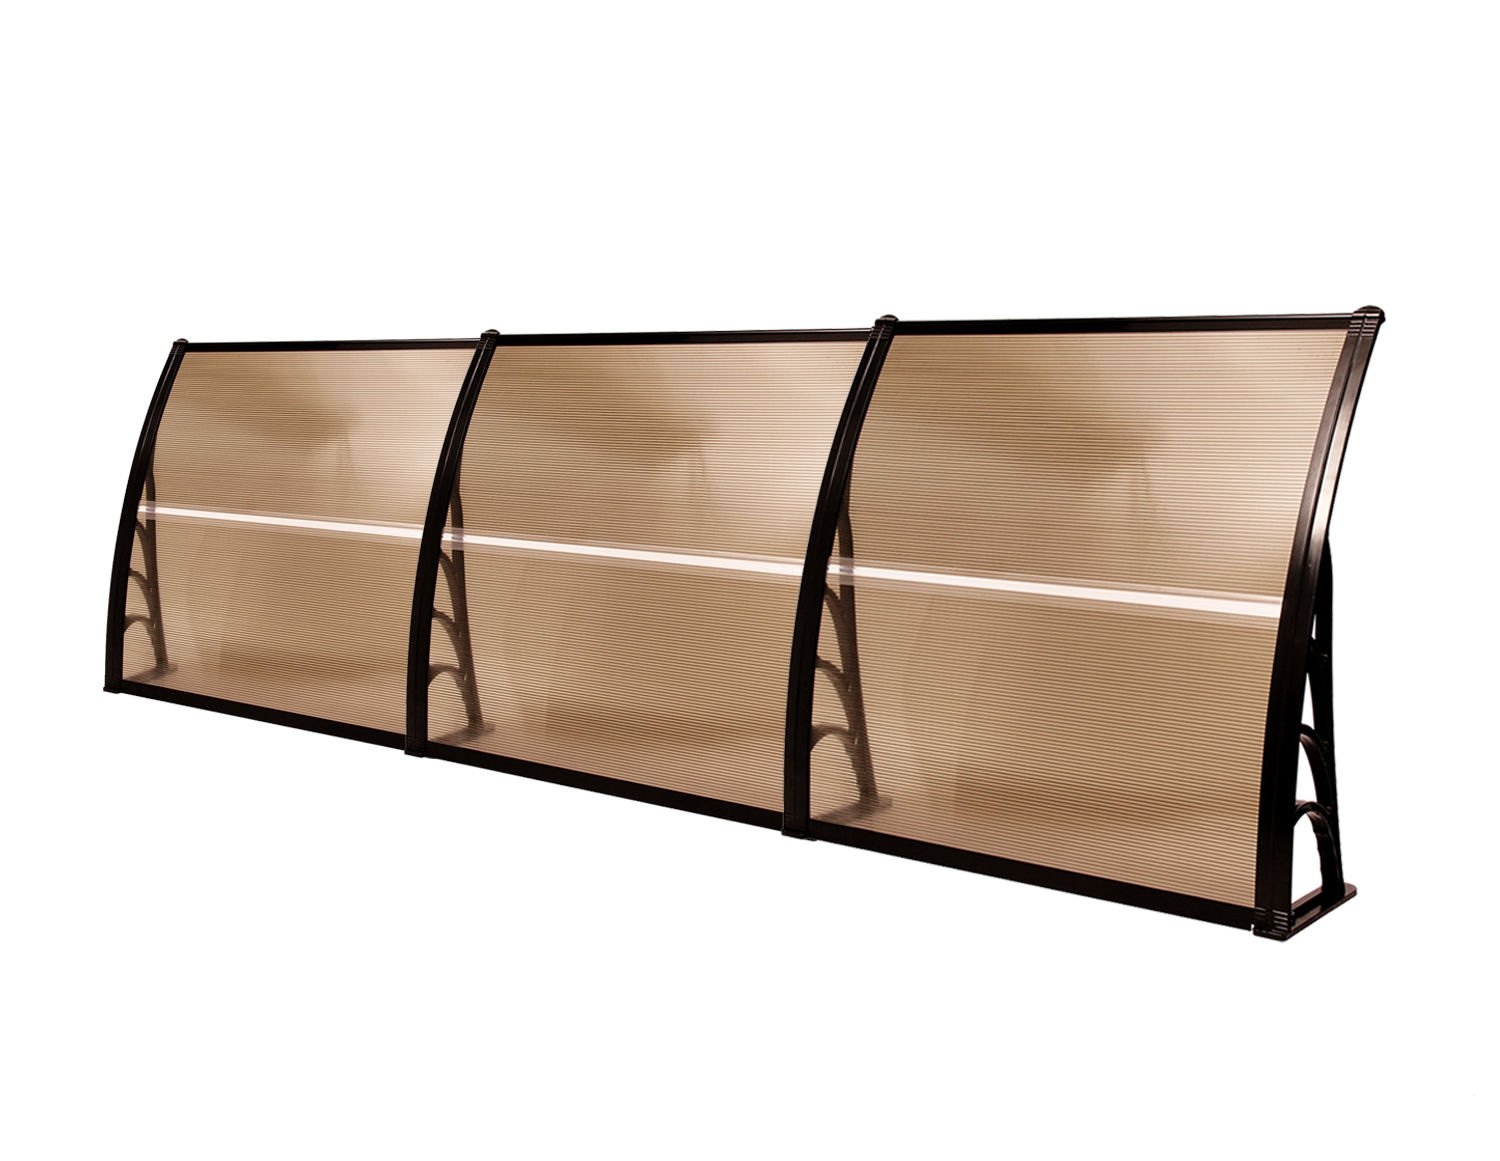 MCombo 40''×120'' Window Awning Outdoor Polycarbonate Front Door Patio Cover Garden Canopy 6055-4012 (Dark Brown) by MCombo